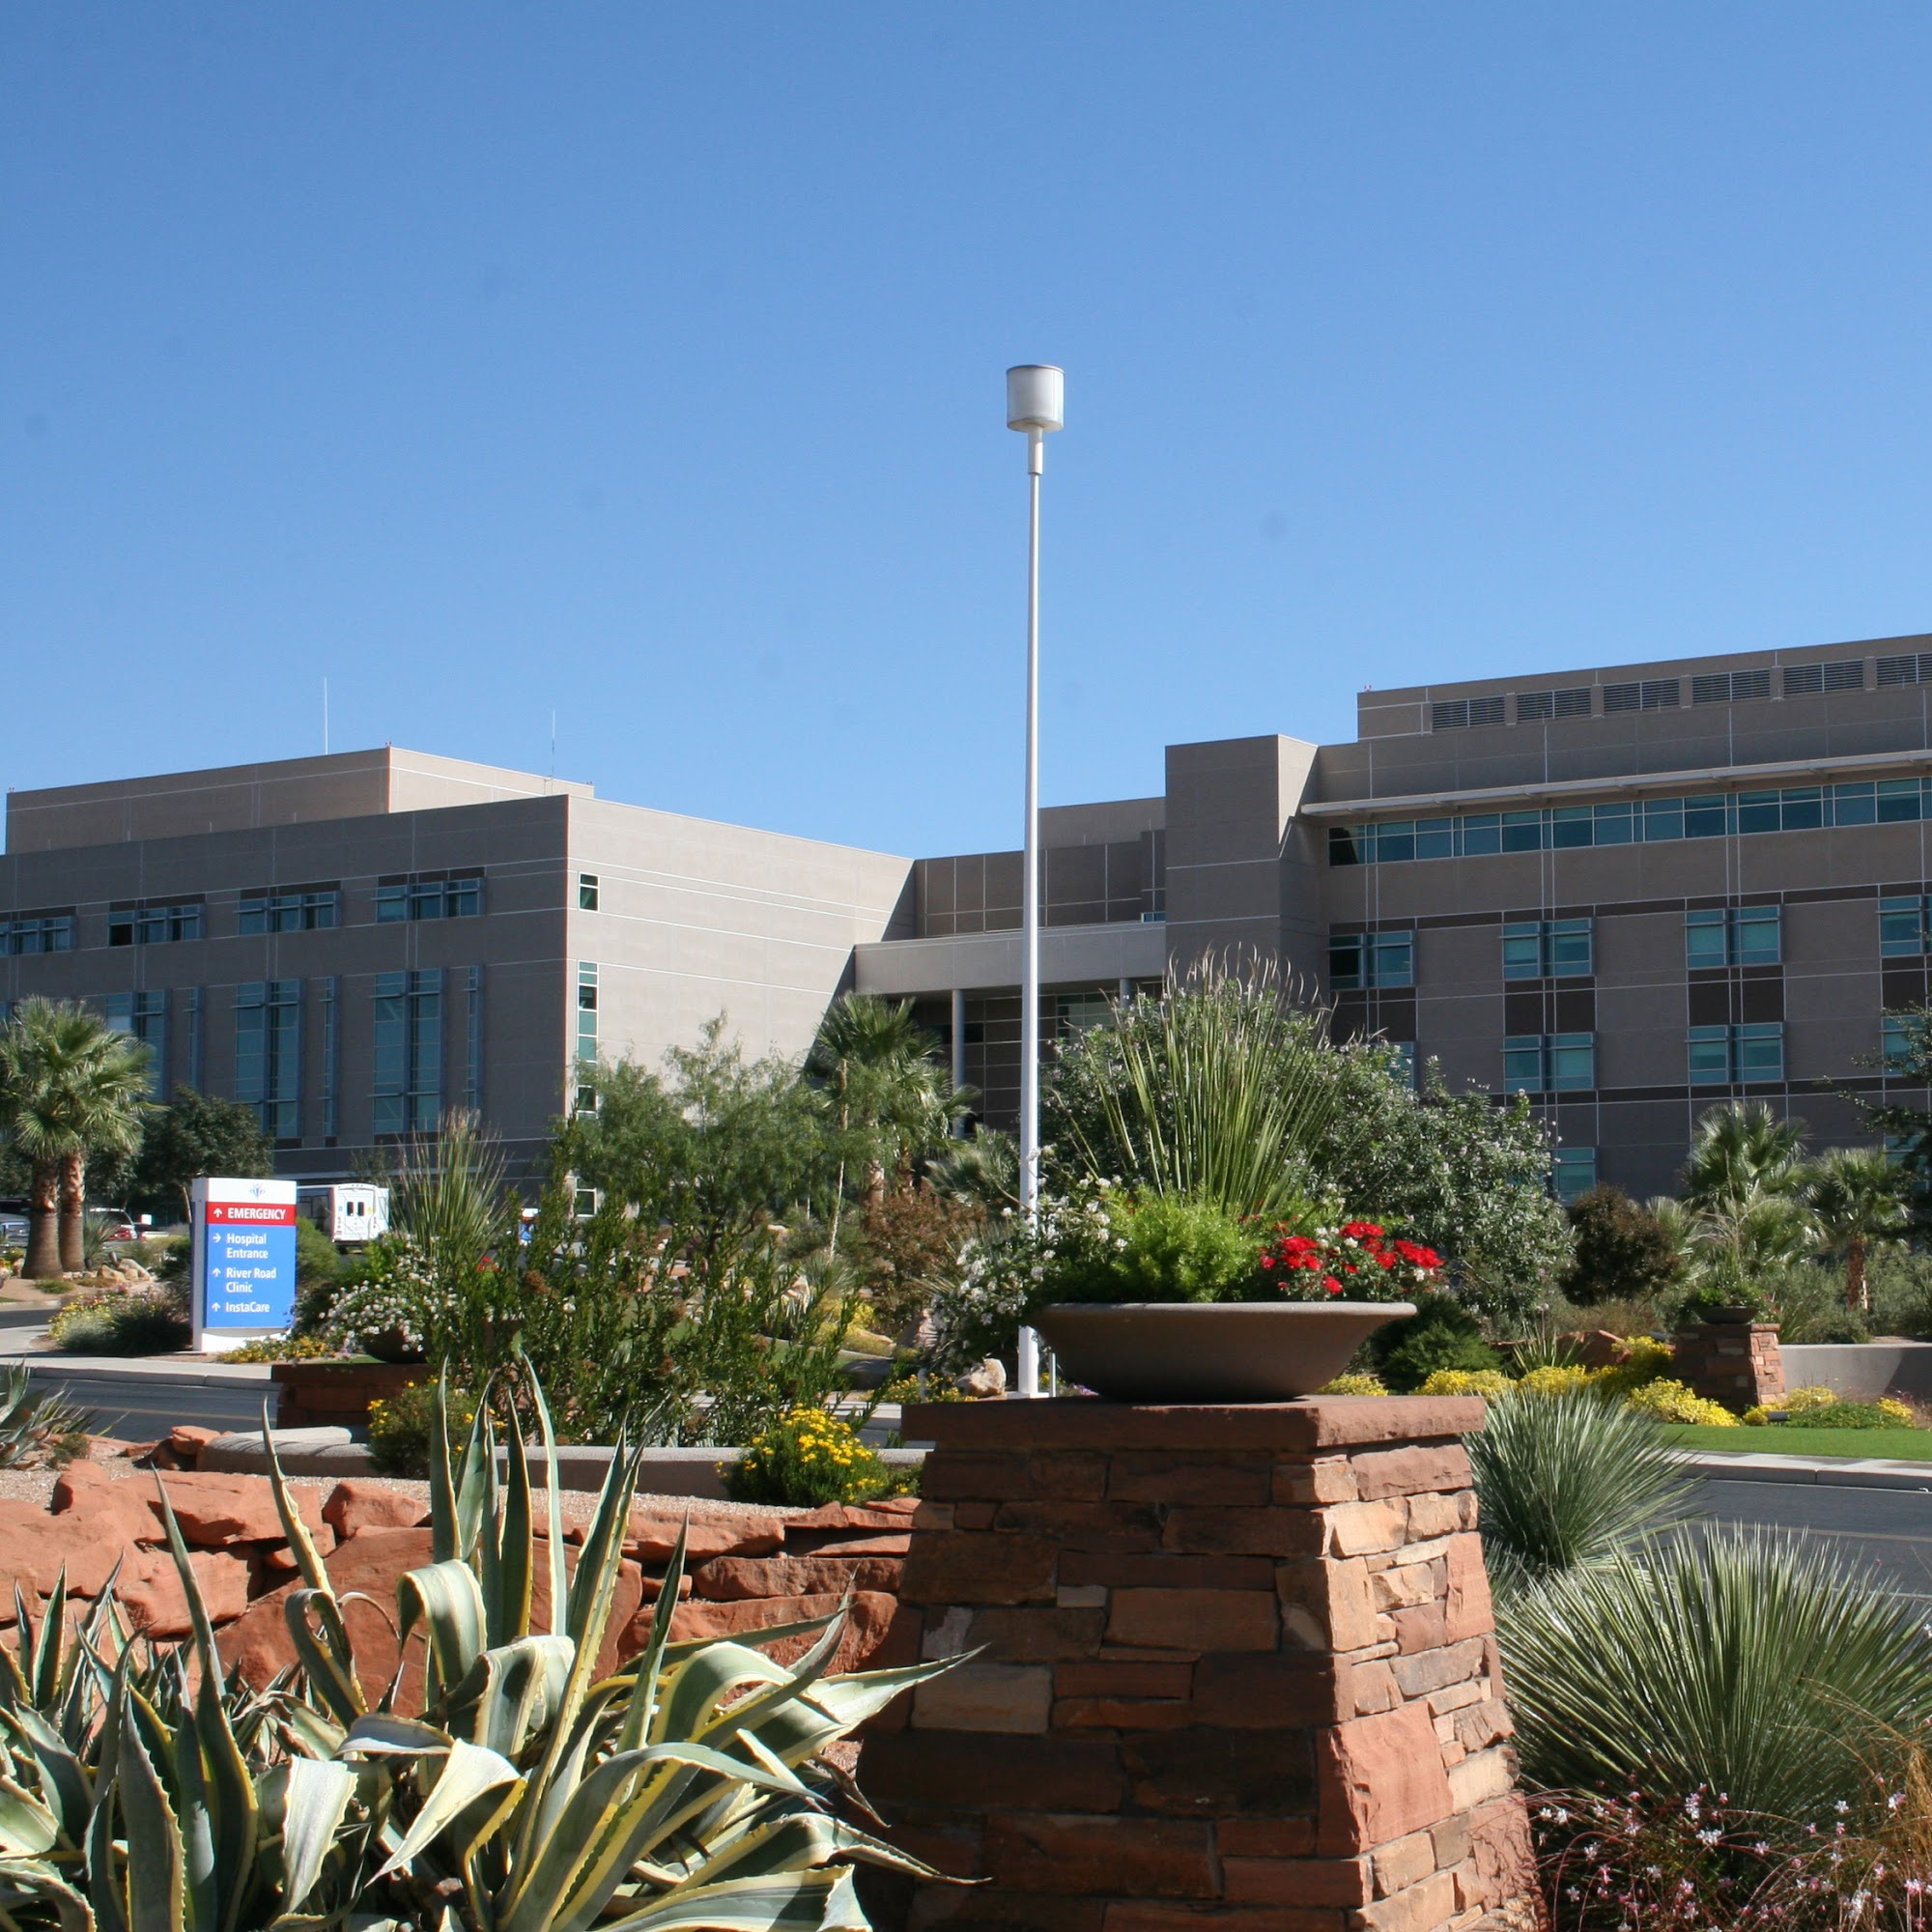 St. George Regional Hospital River Road 1380 E Medical Center Dr, St. George